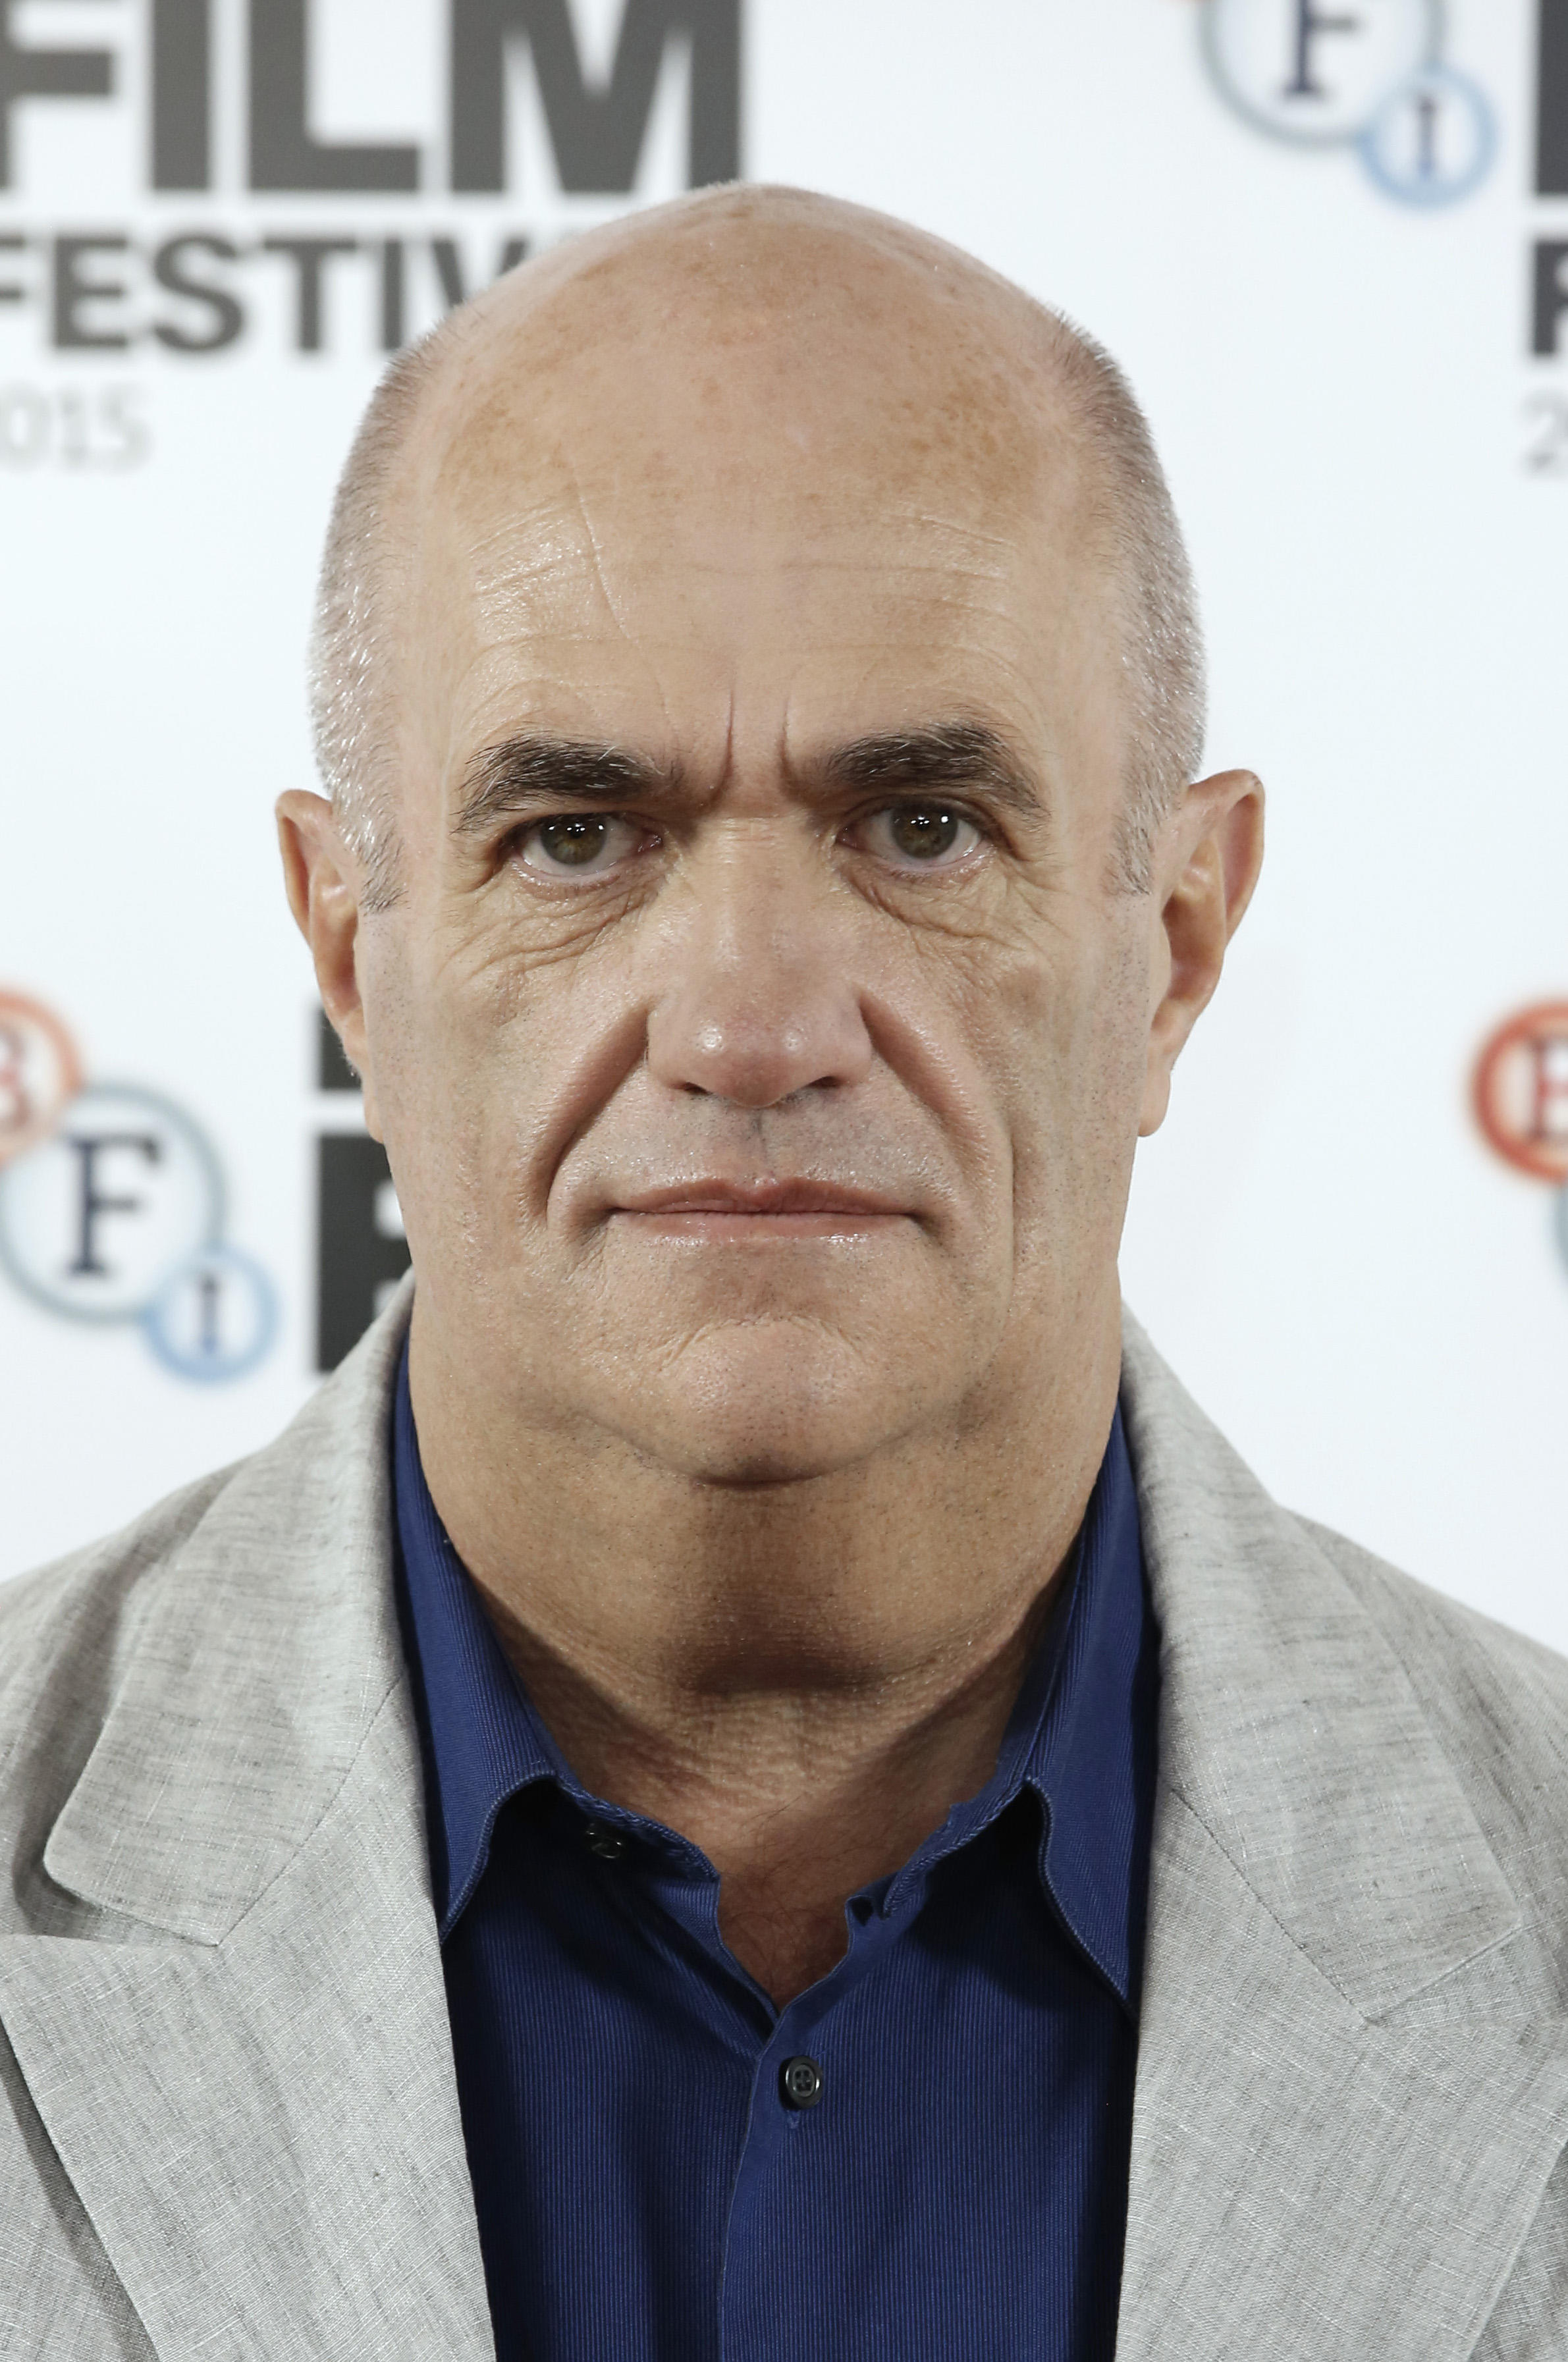 Colm Toibin at the photocall for 'Brooklyn' during the BFI London Film Festival.